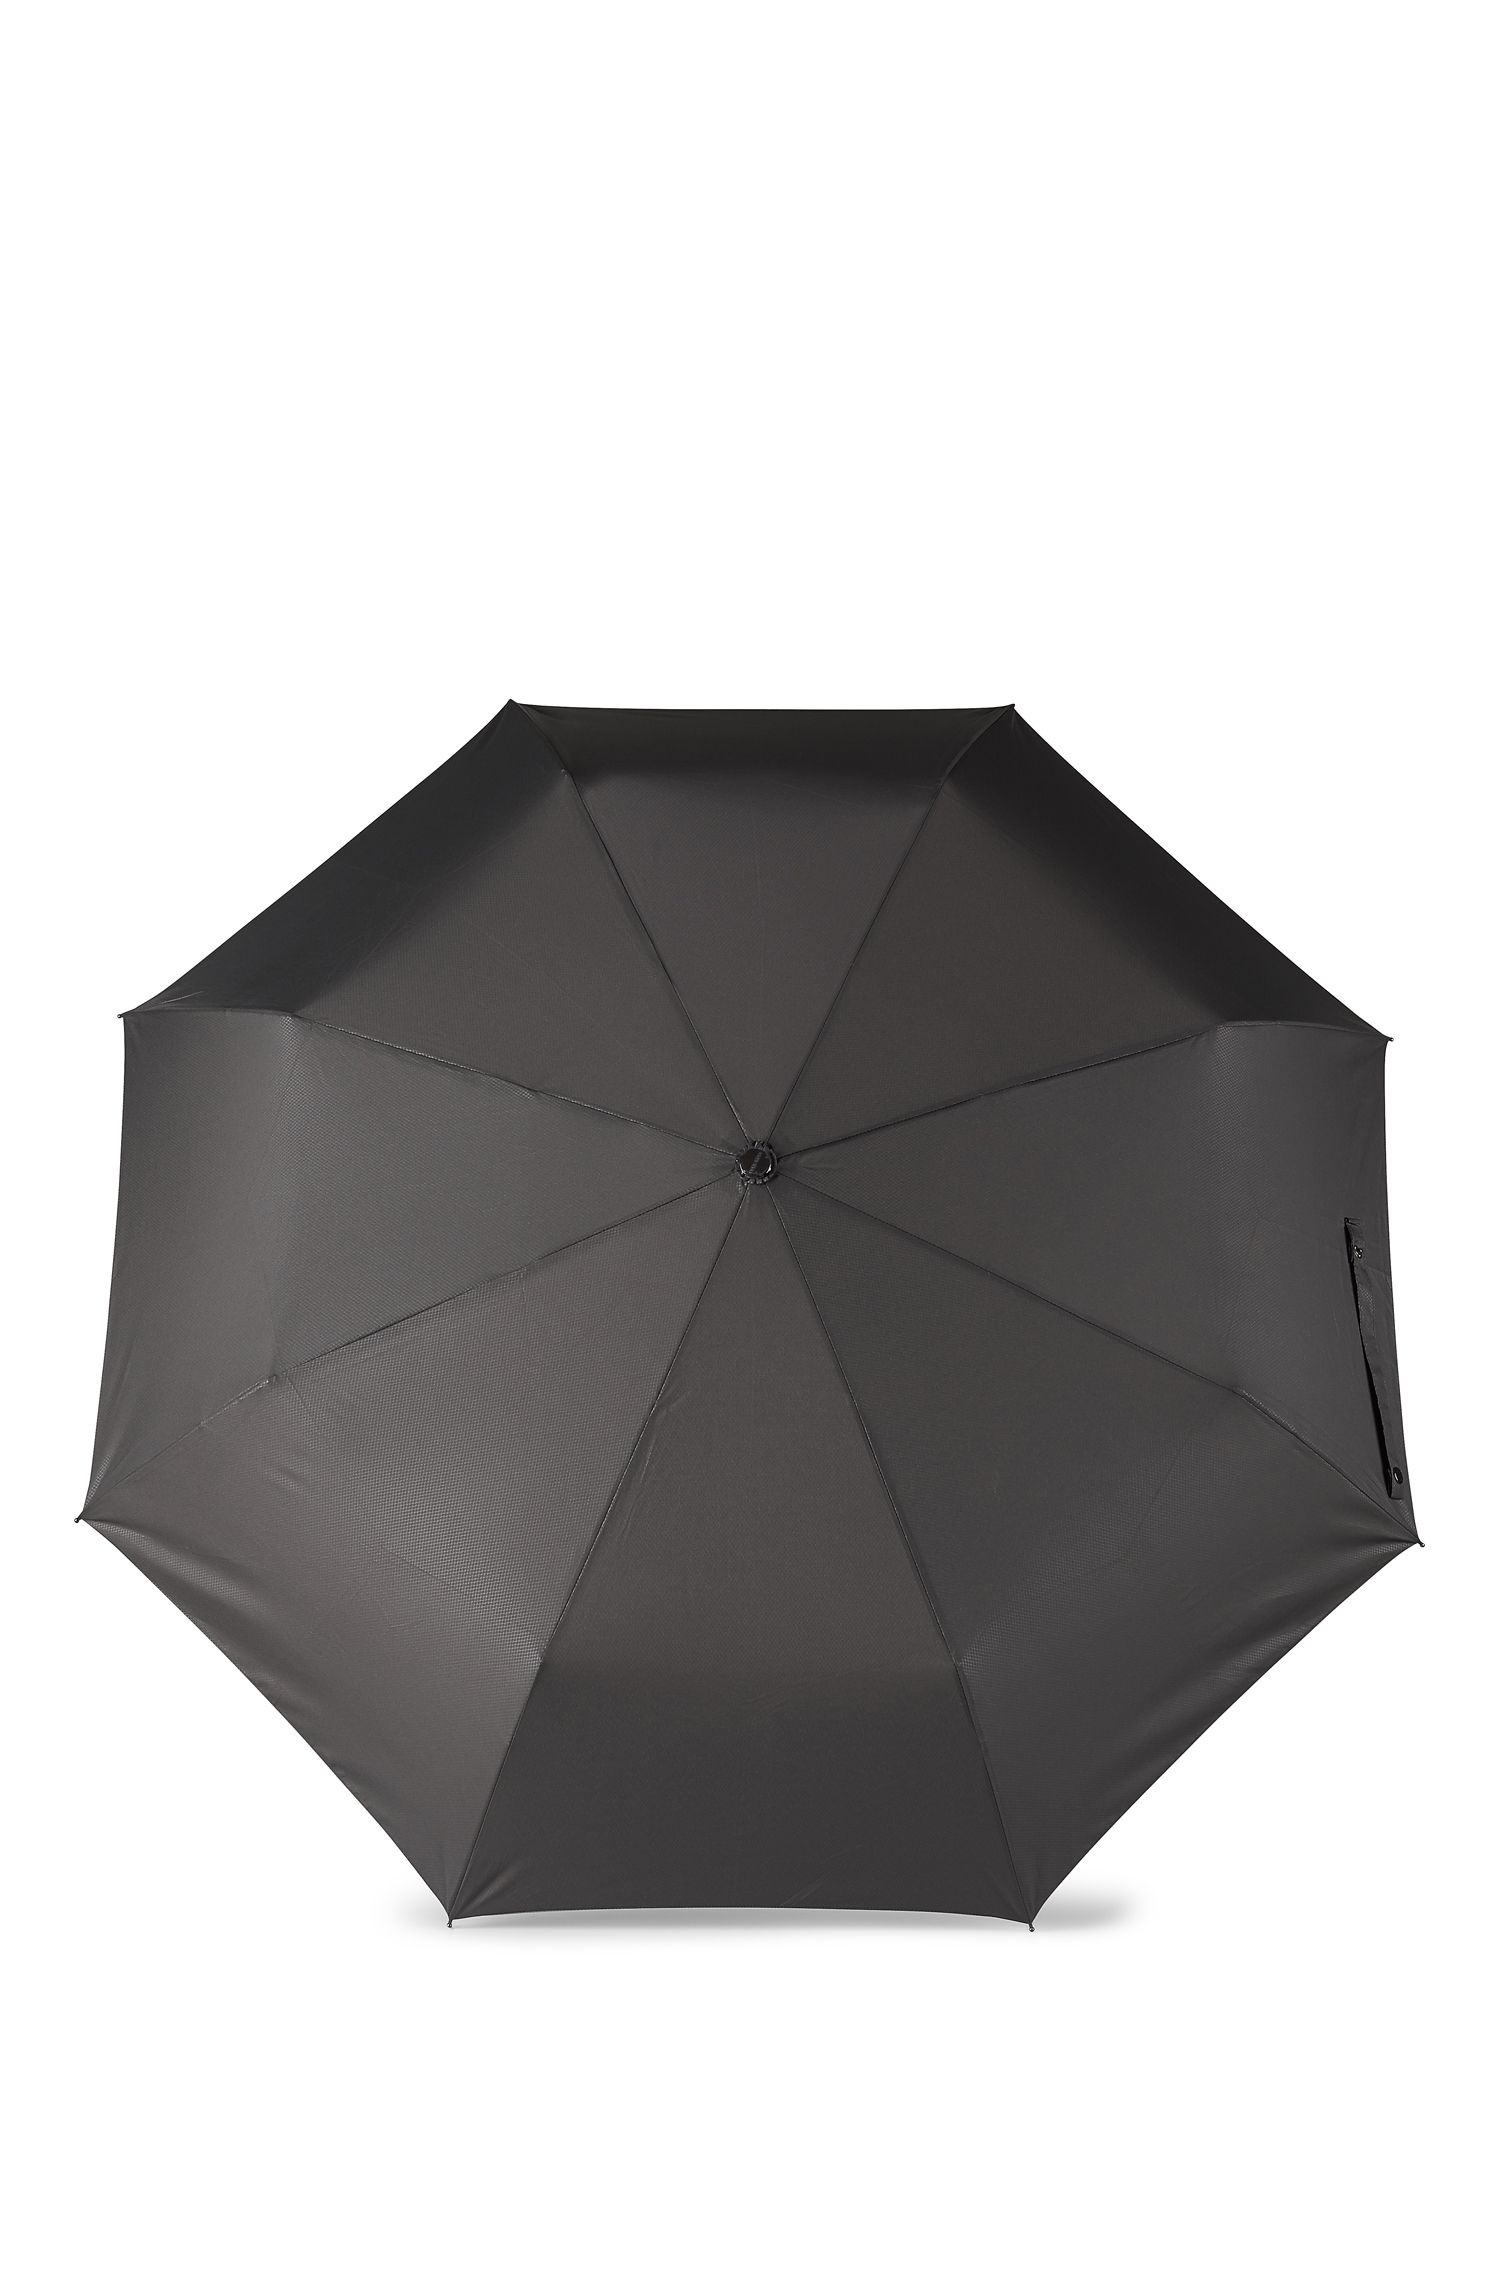 'Umbrella New Loop Dark' | Aluminum Frame Patterned Pocket Umbrella